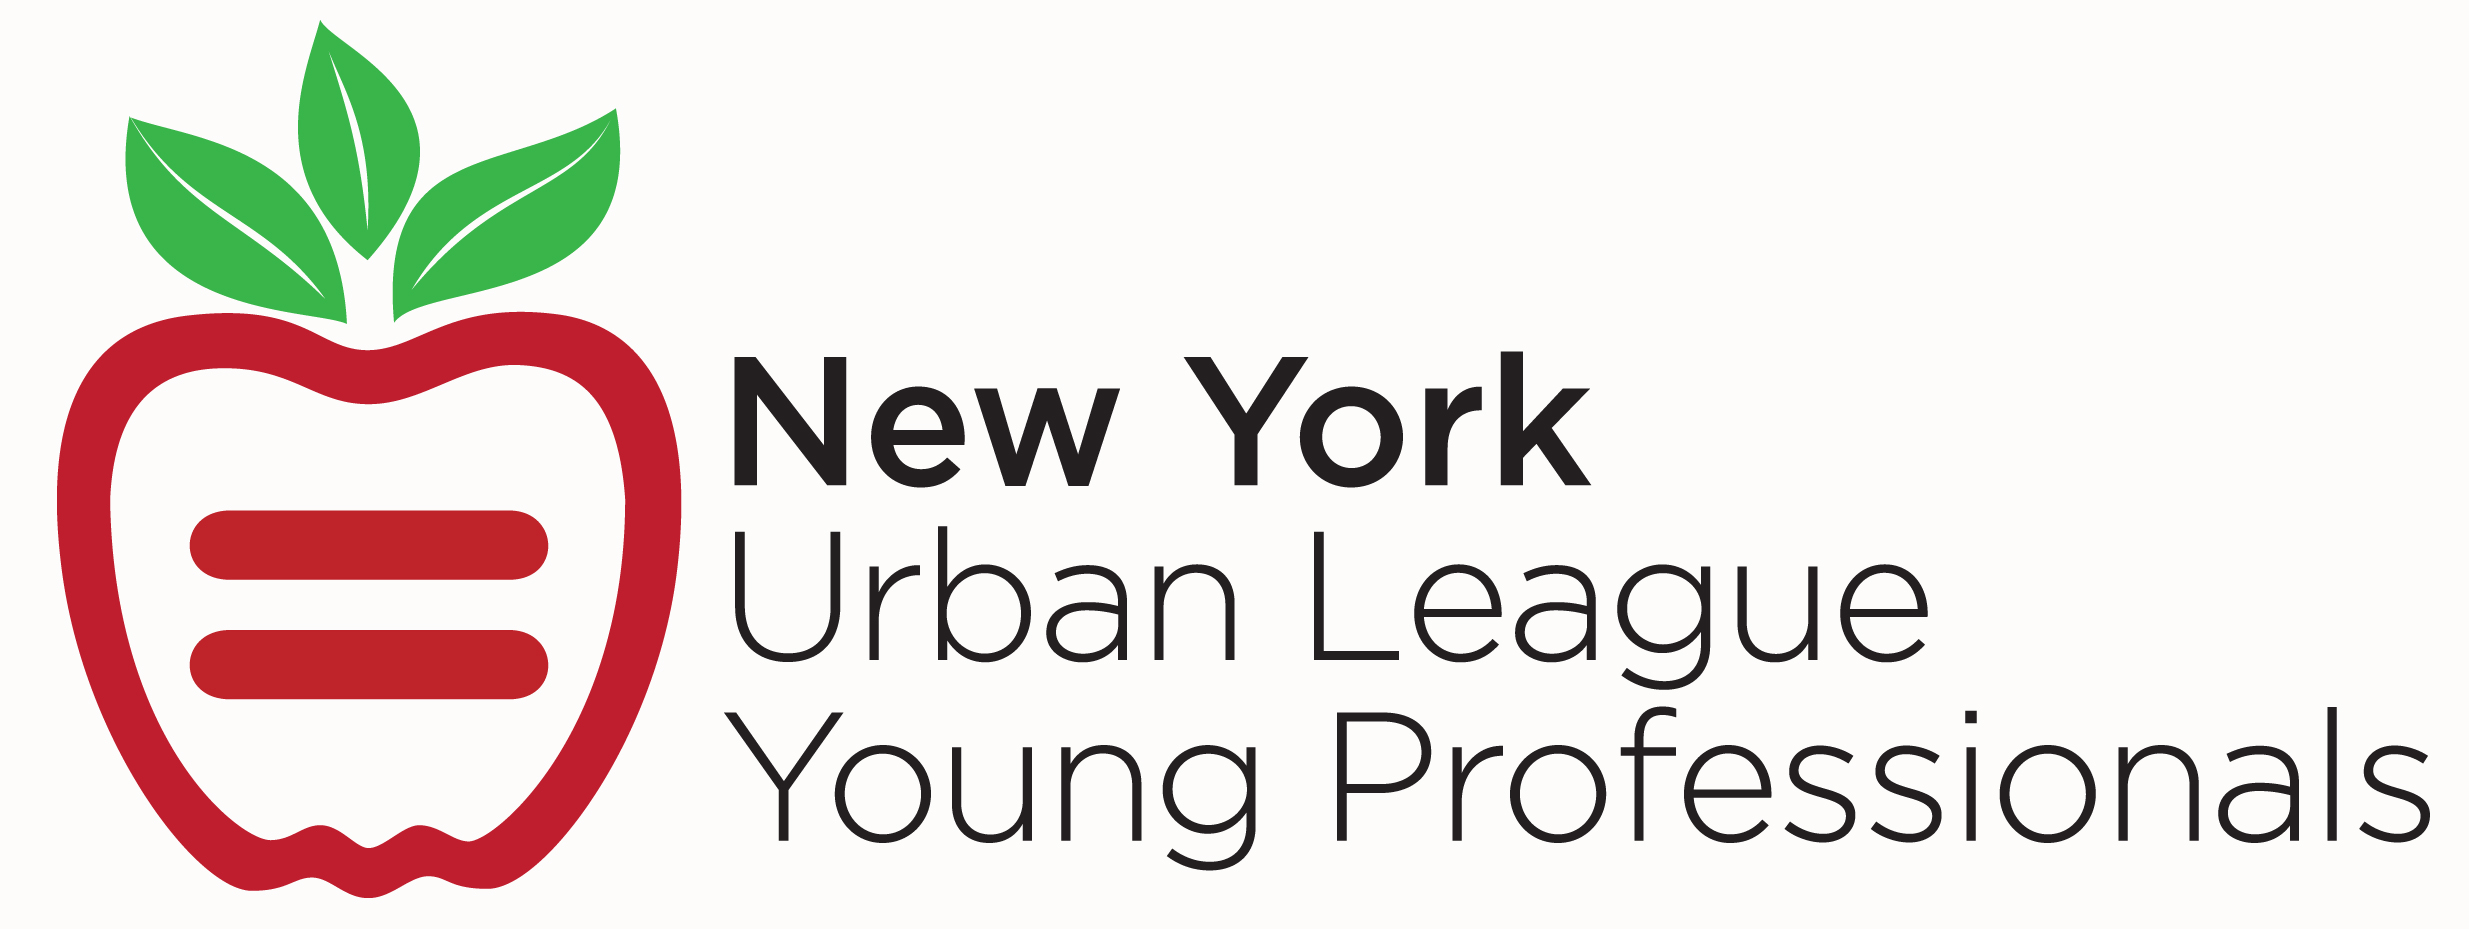 NY Urban League Young Professionals